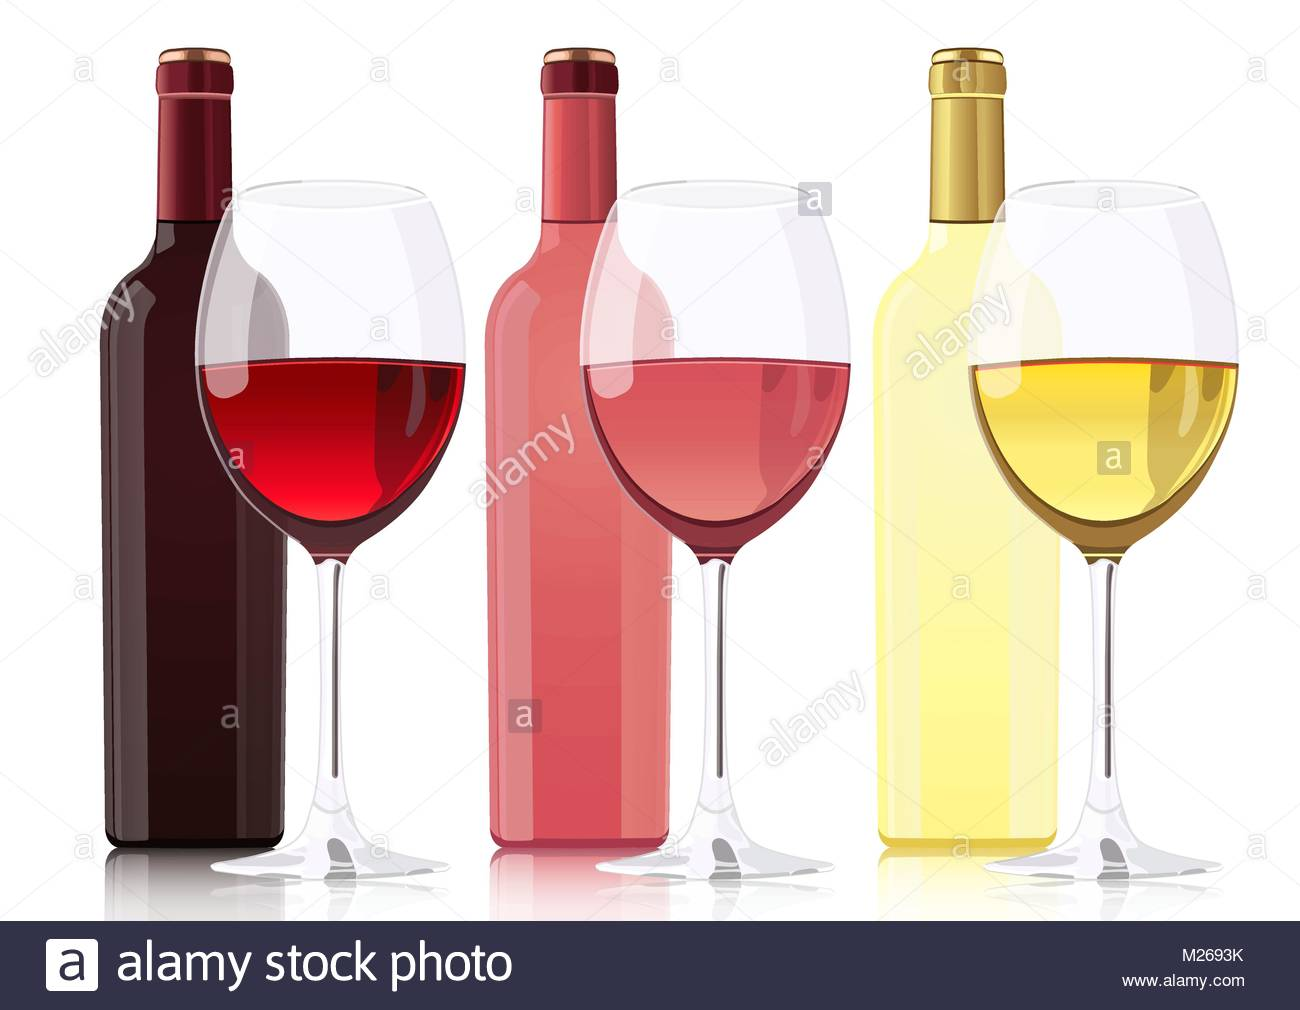 1300x1010 Set Of Bottles Of Different Types Of Wines. Bottle Of Red Wine